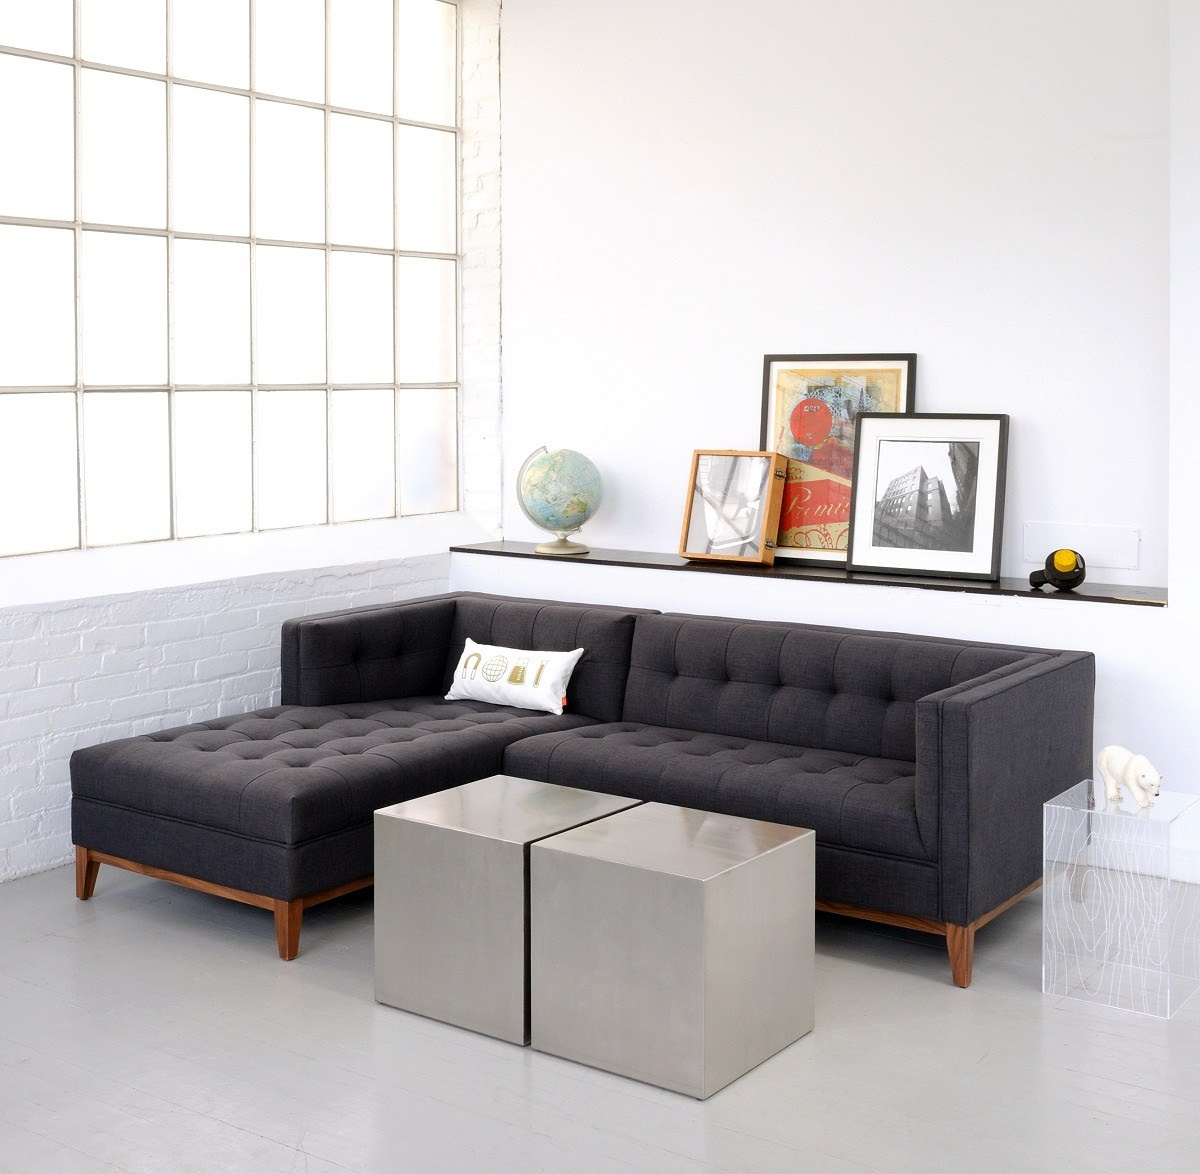 The Best Apartment Sectional Sofas Solving Function and ...